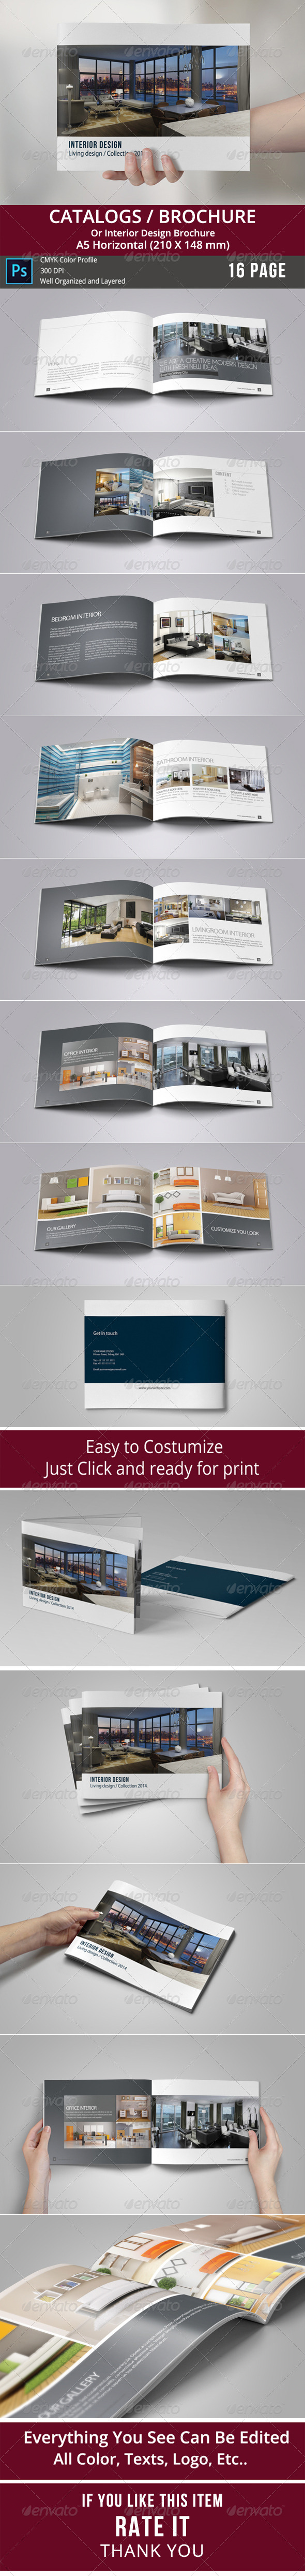 GraphicRiver Catalogs Brochure 8770424